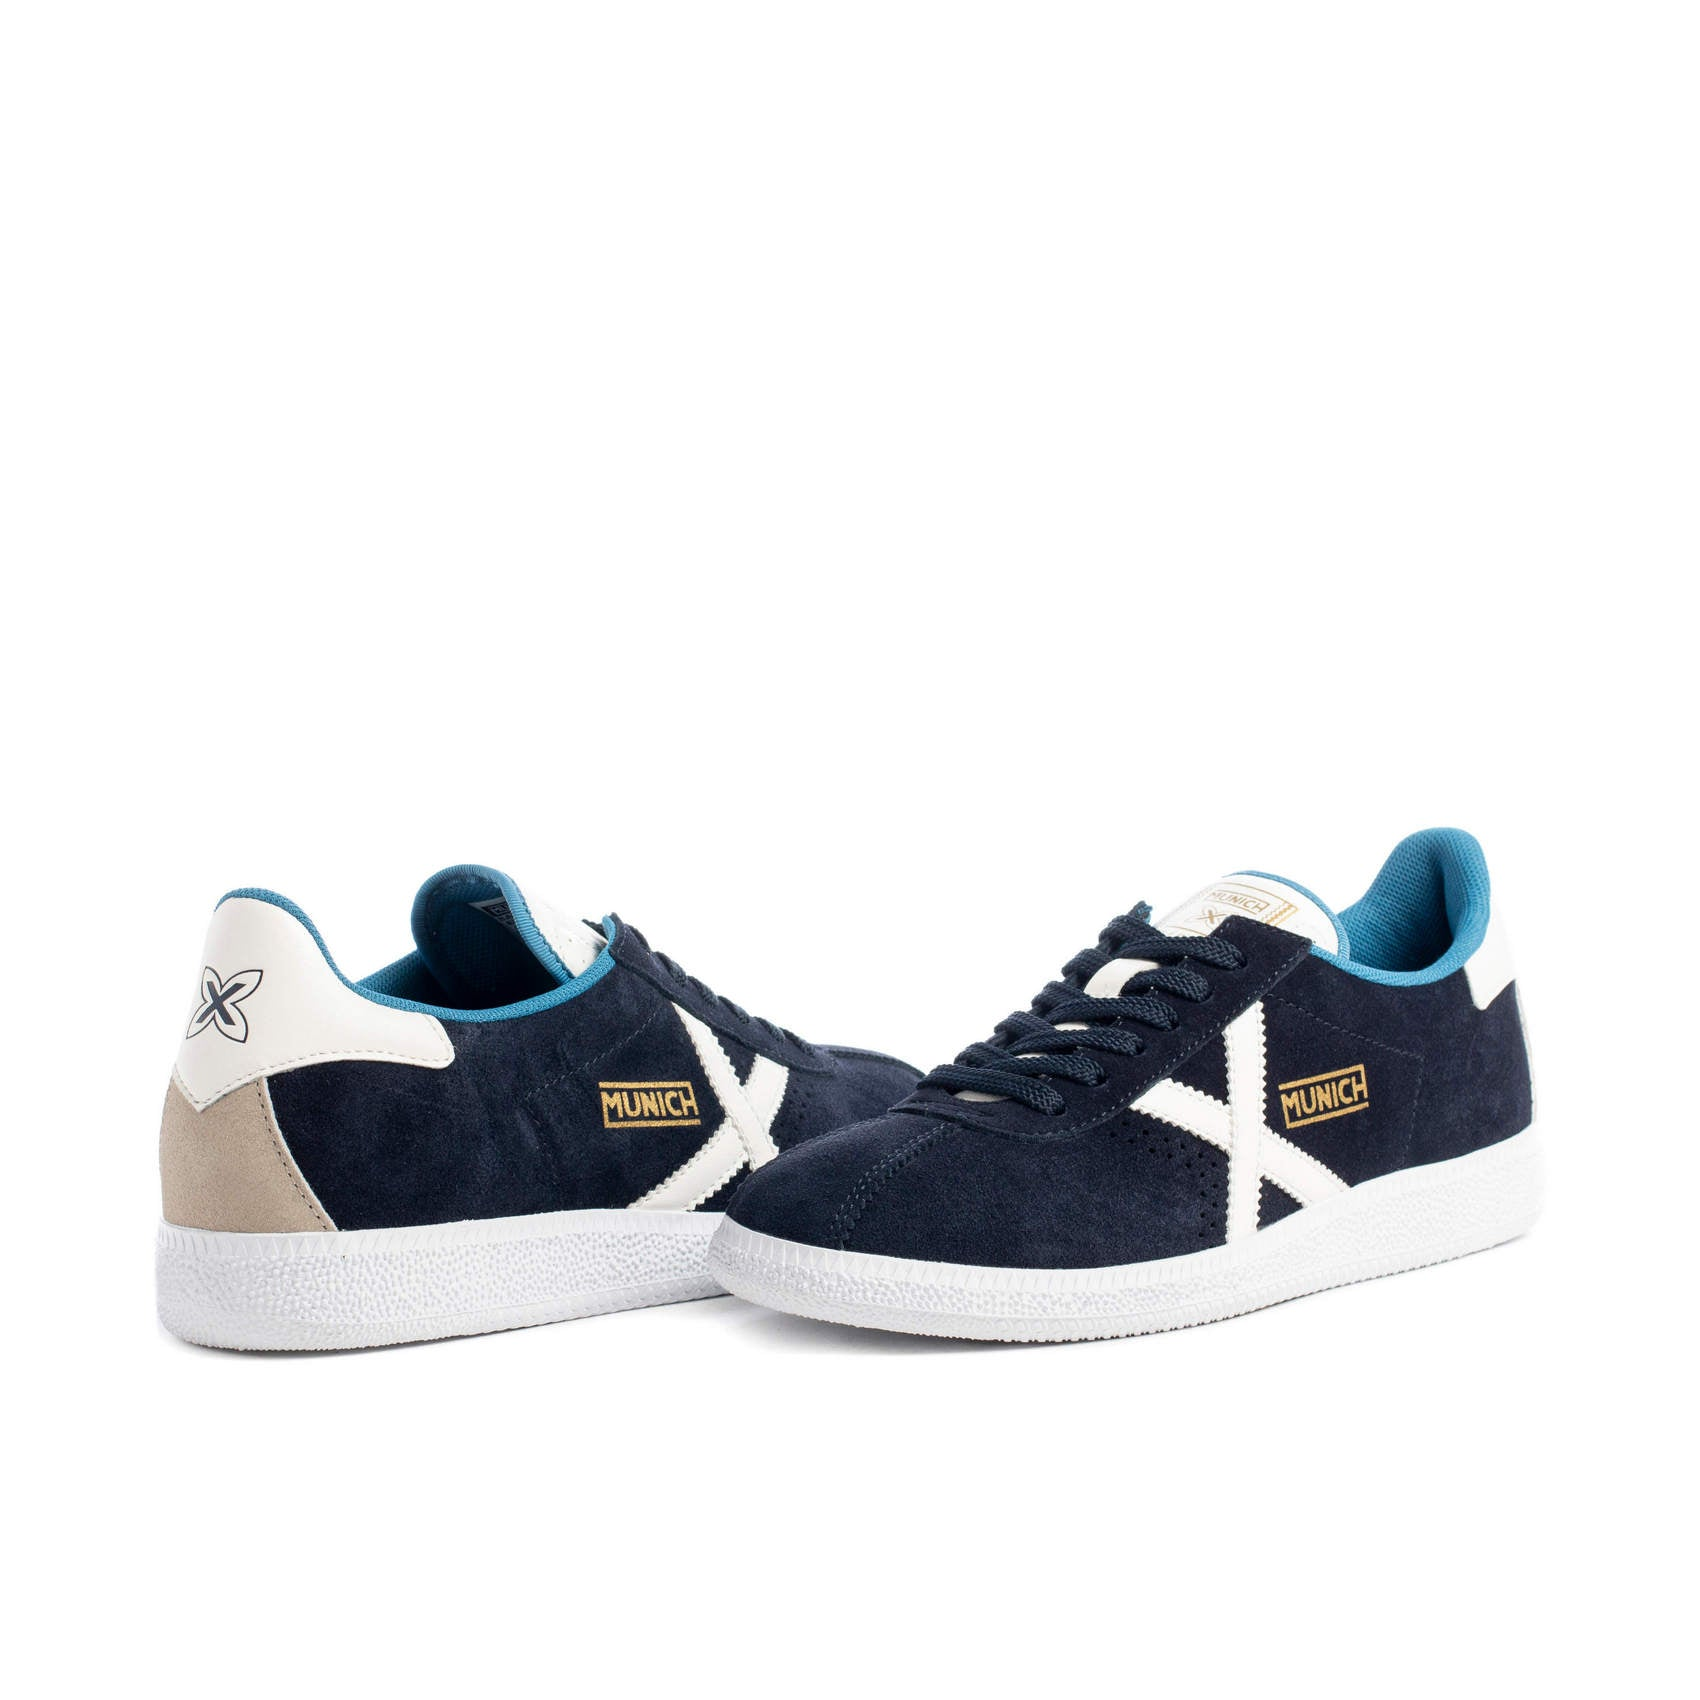 ID30202 Munich Blue Barru Trainer